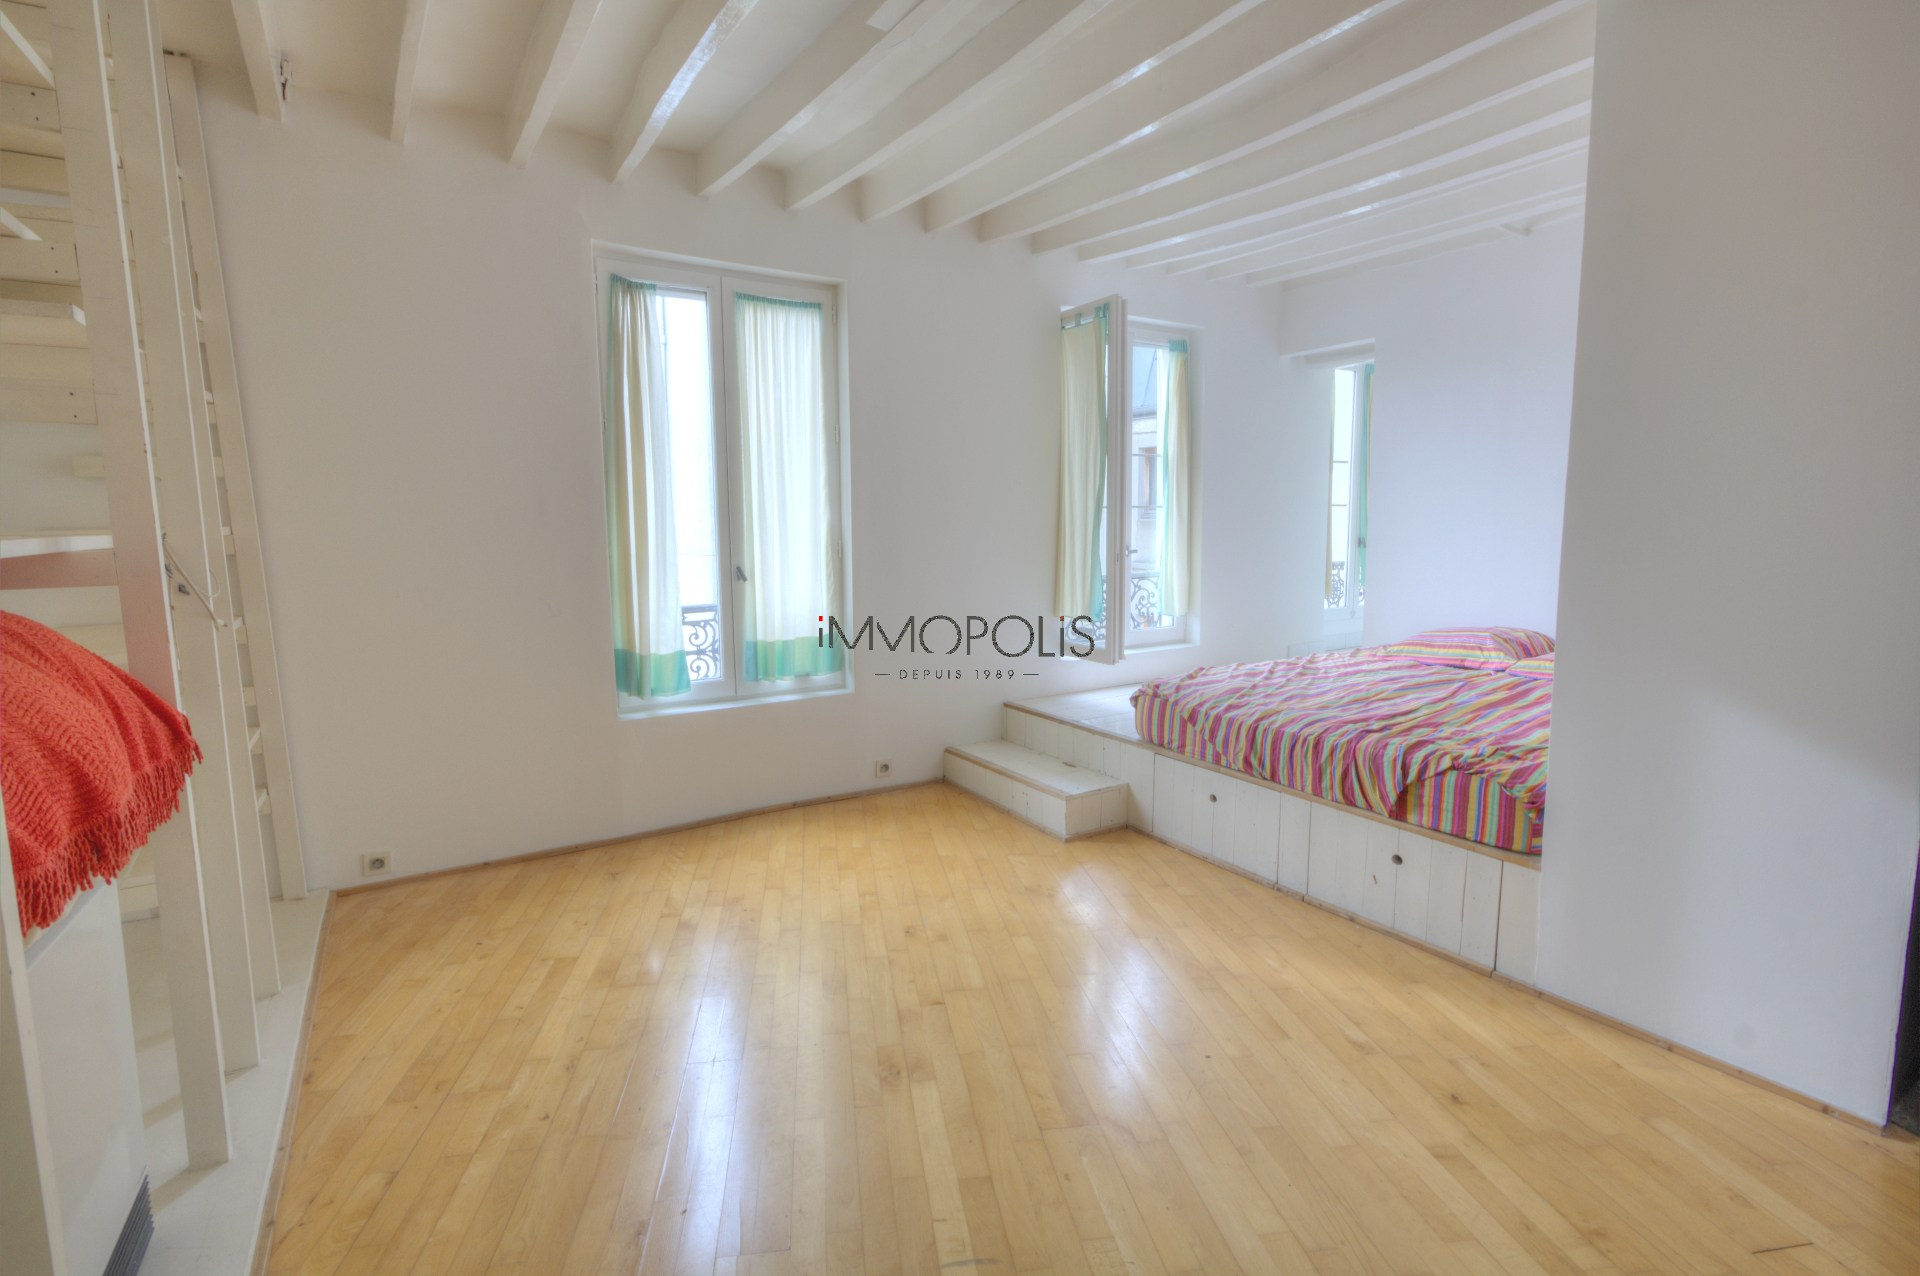 In the heart of the Abbesses, rue Berthe, beautiful 2 room apartment with a perfect plan, in good condition, crossing onto a quiet street and open courtyard! 4